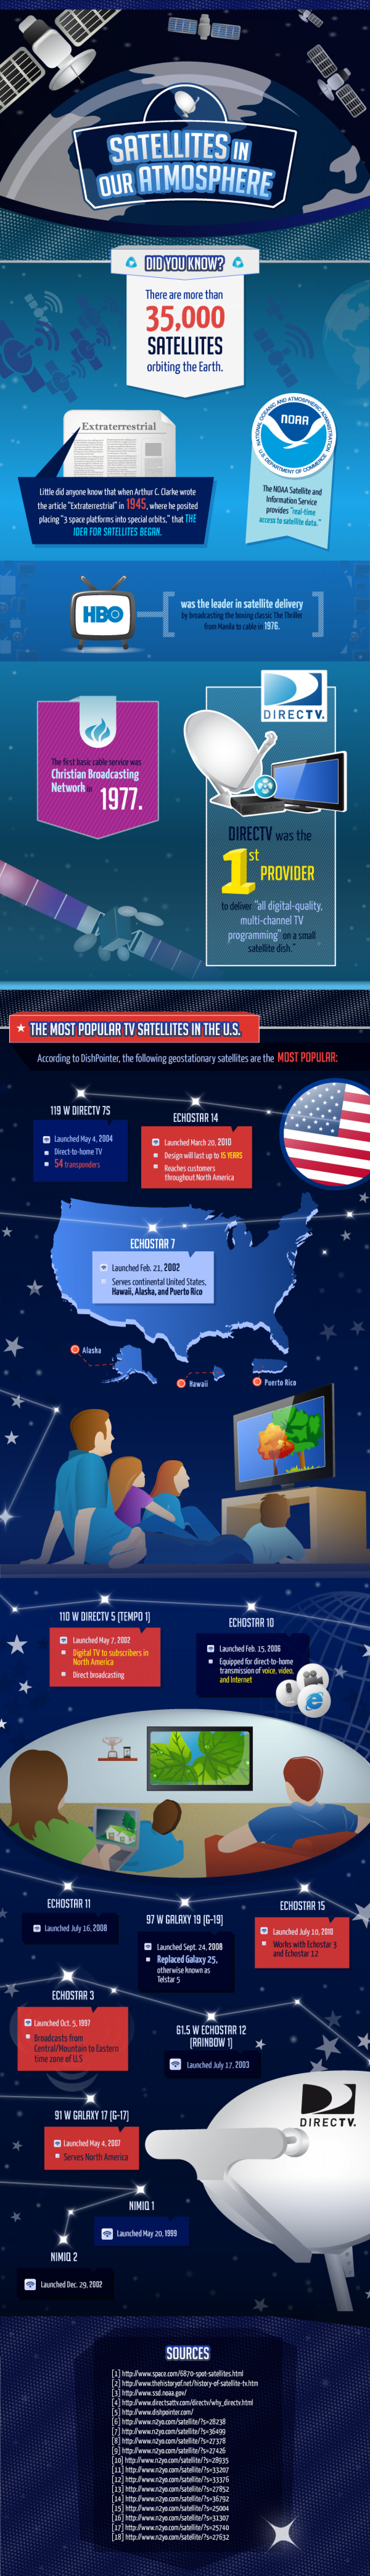 Satellites In Our Atmosphere Infographic